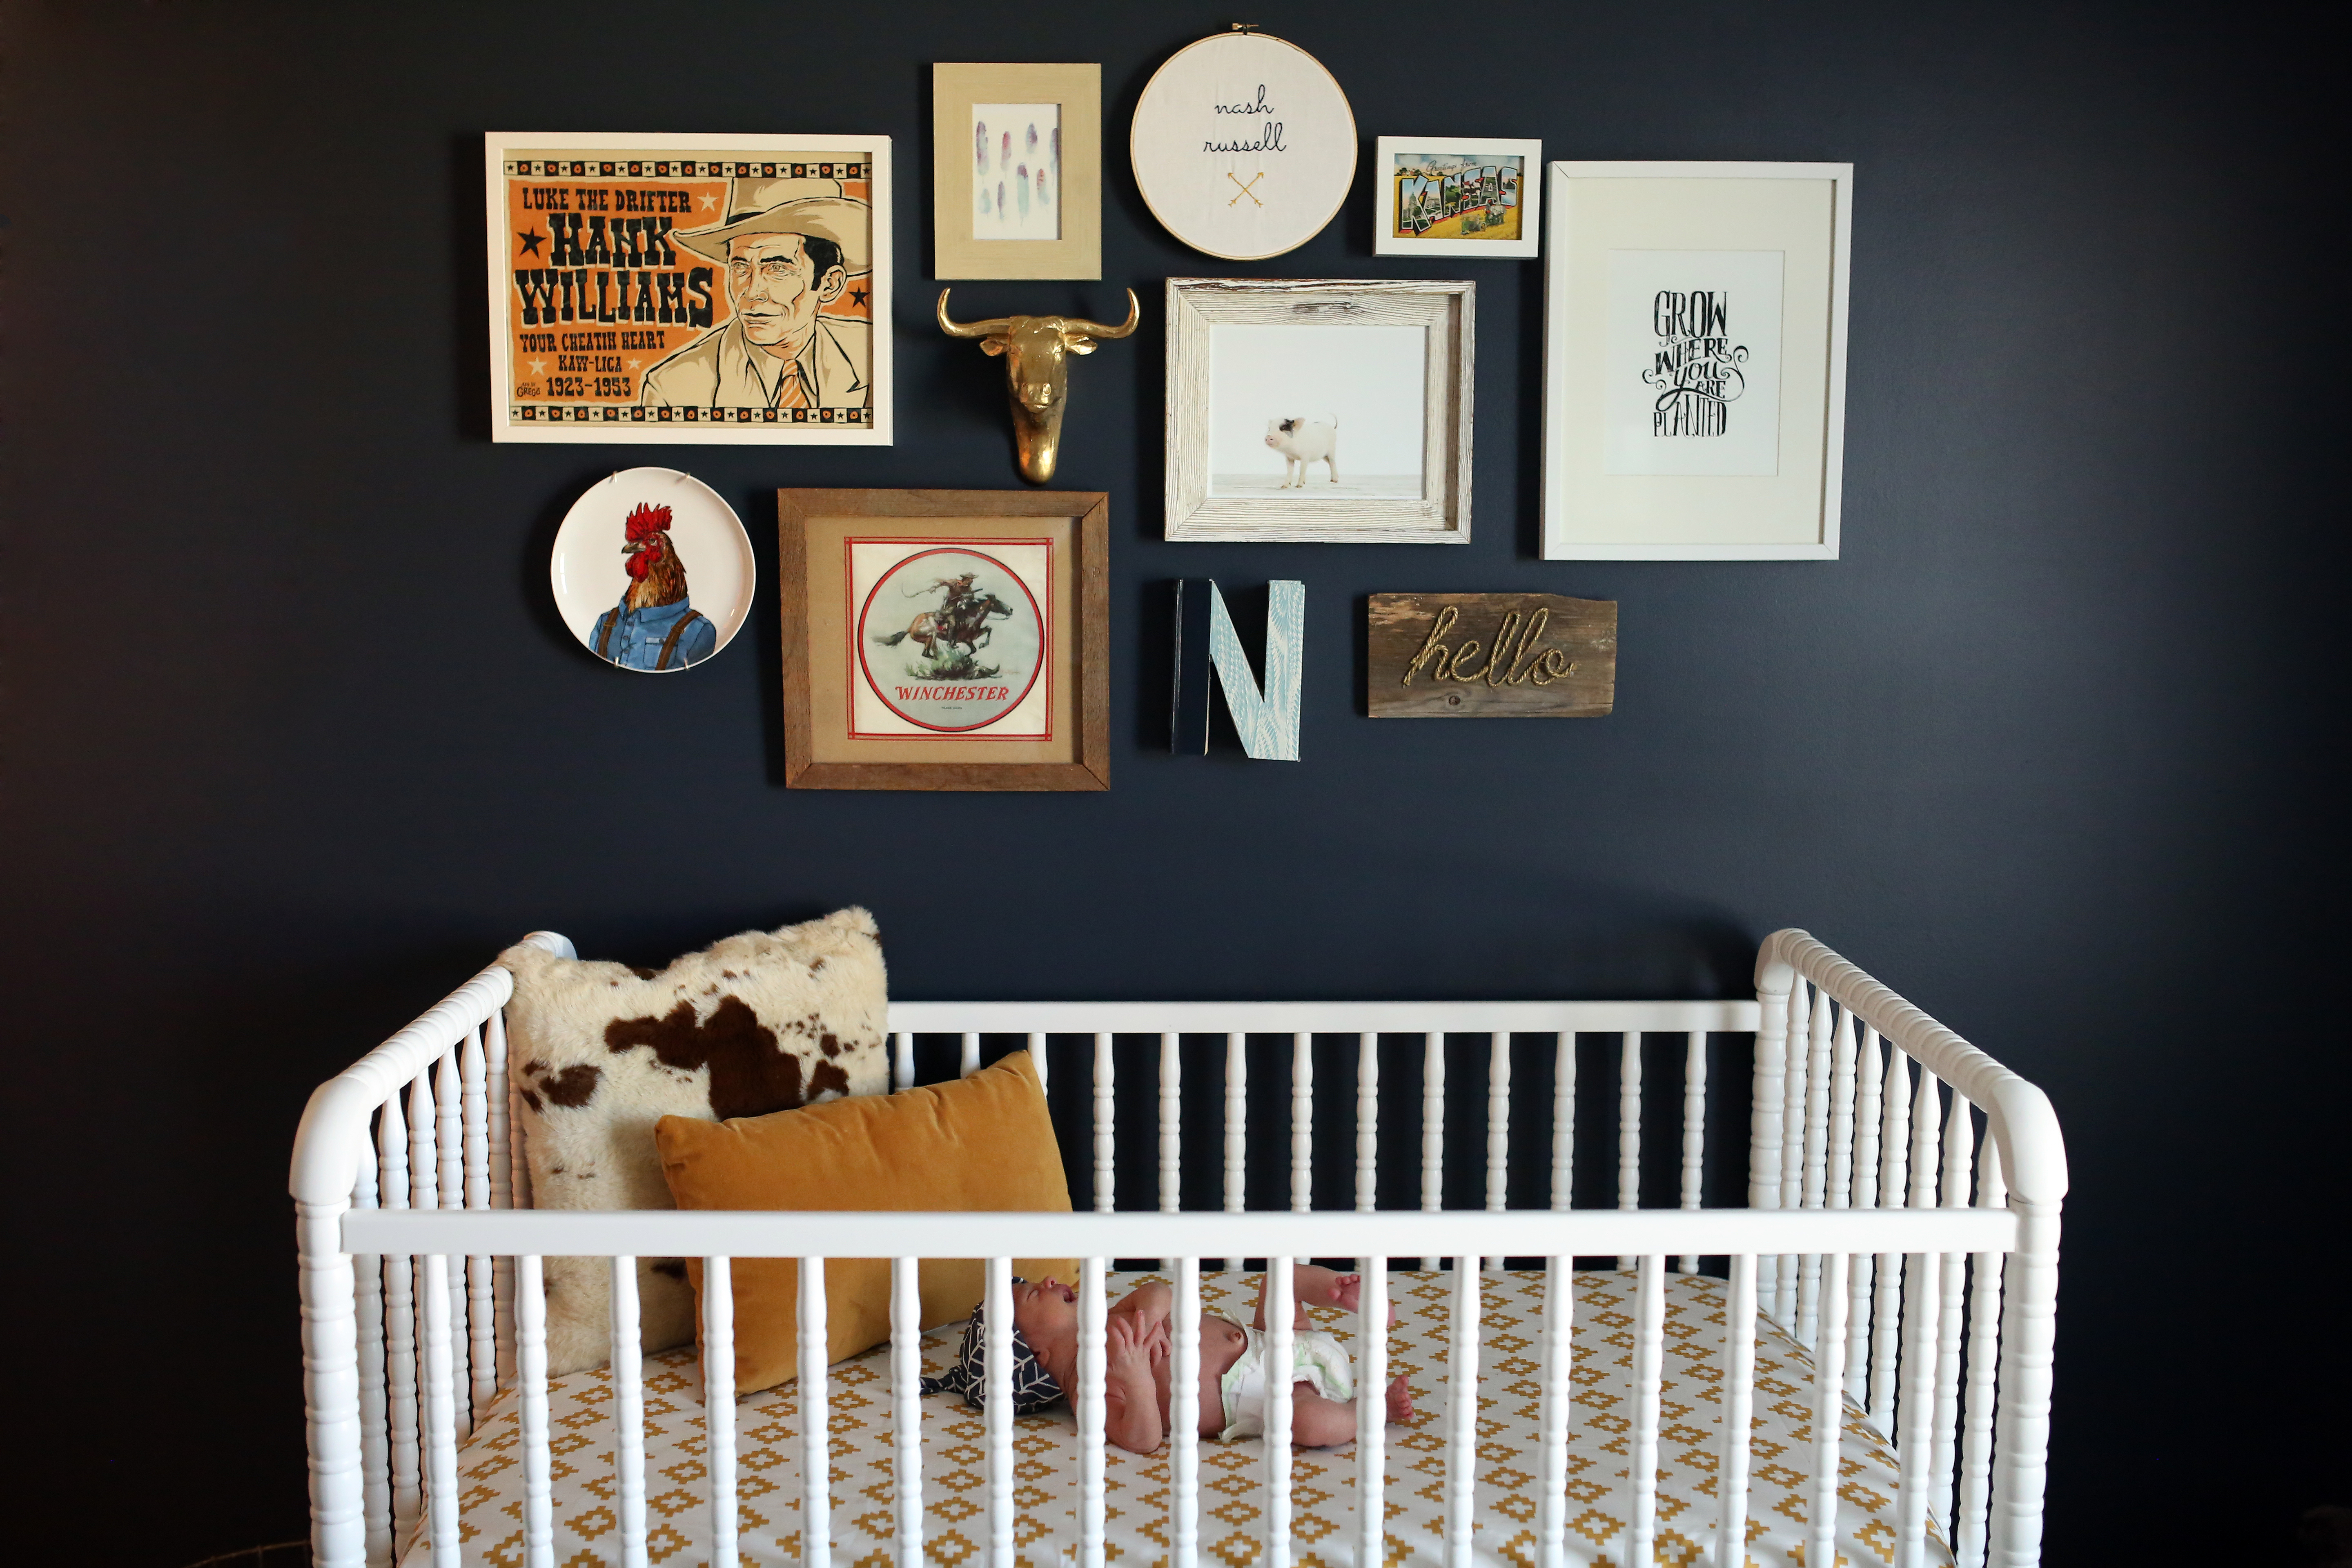 Country Themed Gallery Wall in this Farm Nursery